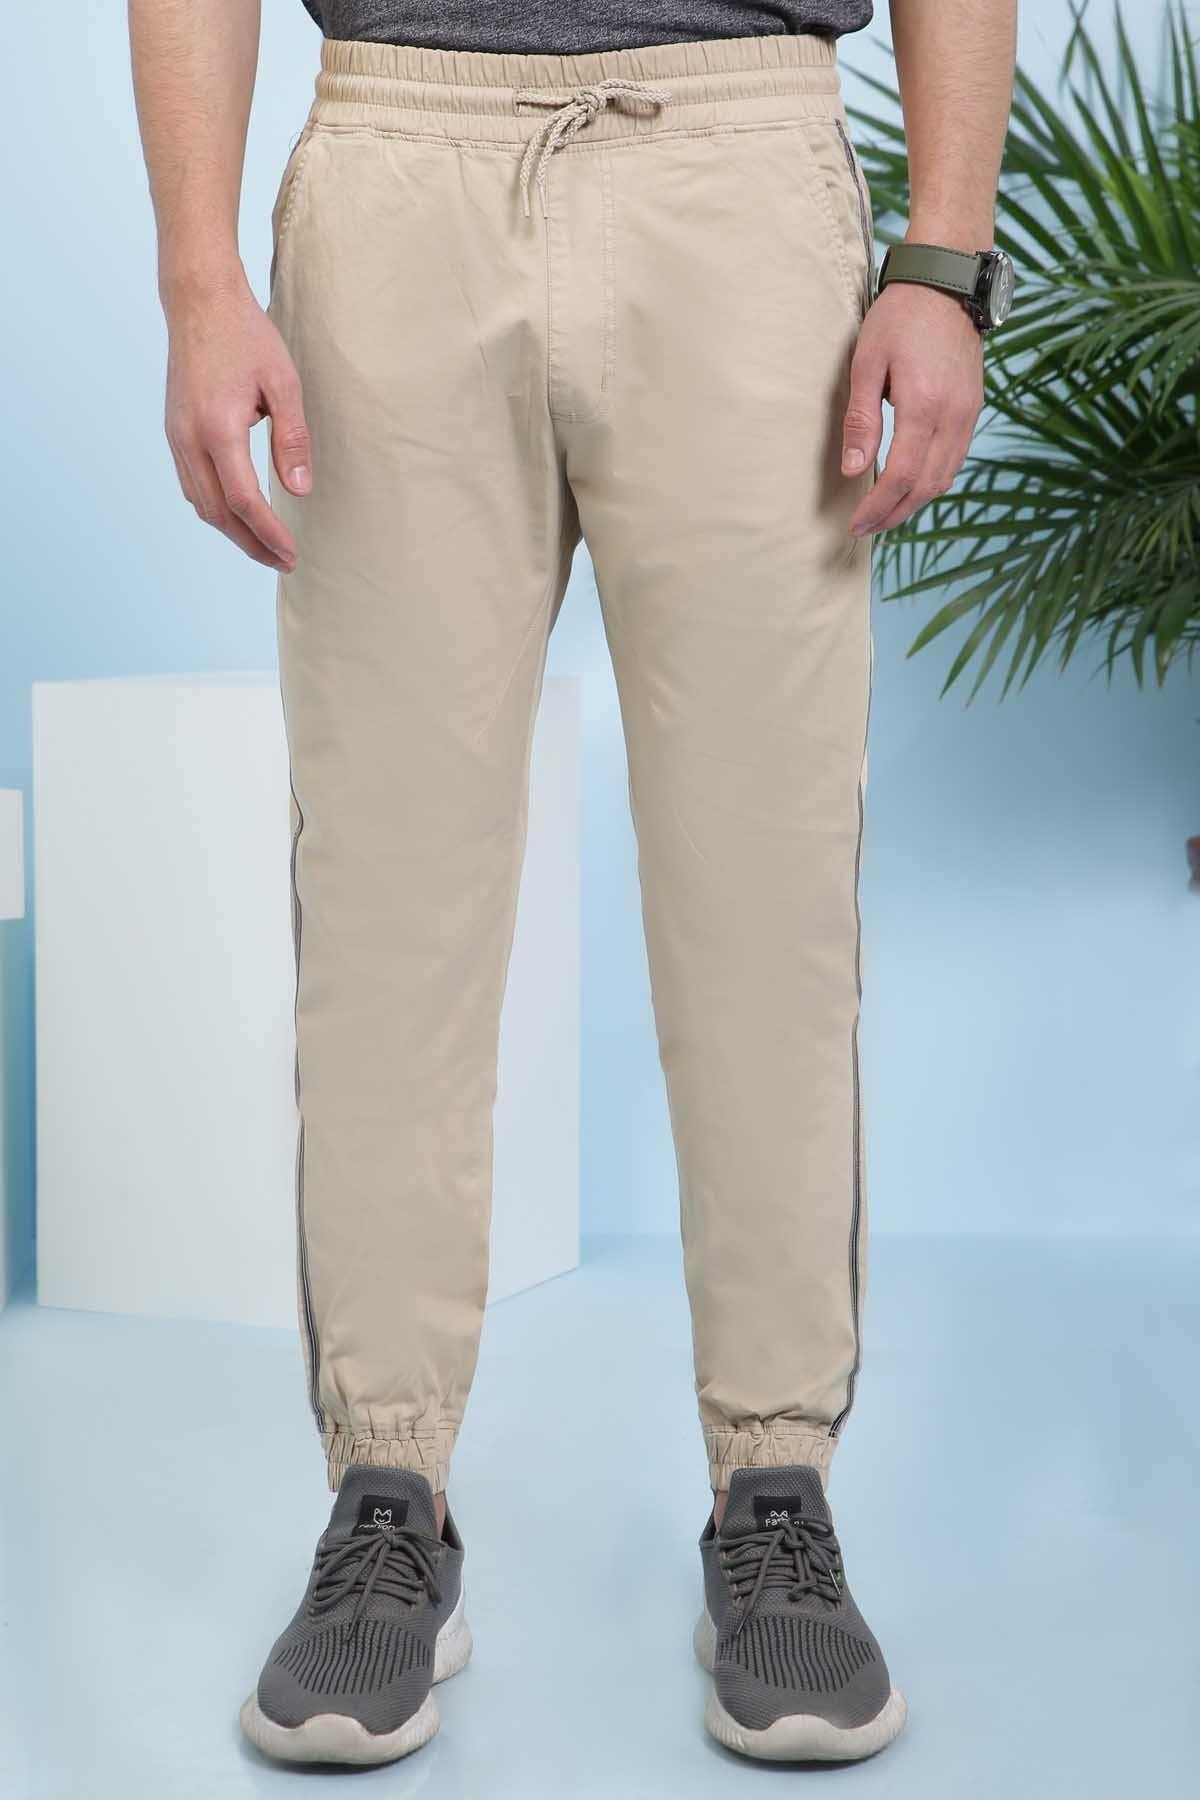 CASUAL TROUSER SLIM FIT LIGHT KHAKI - Charcoal - N-CASUAL -